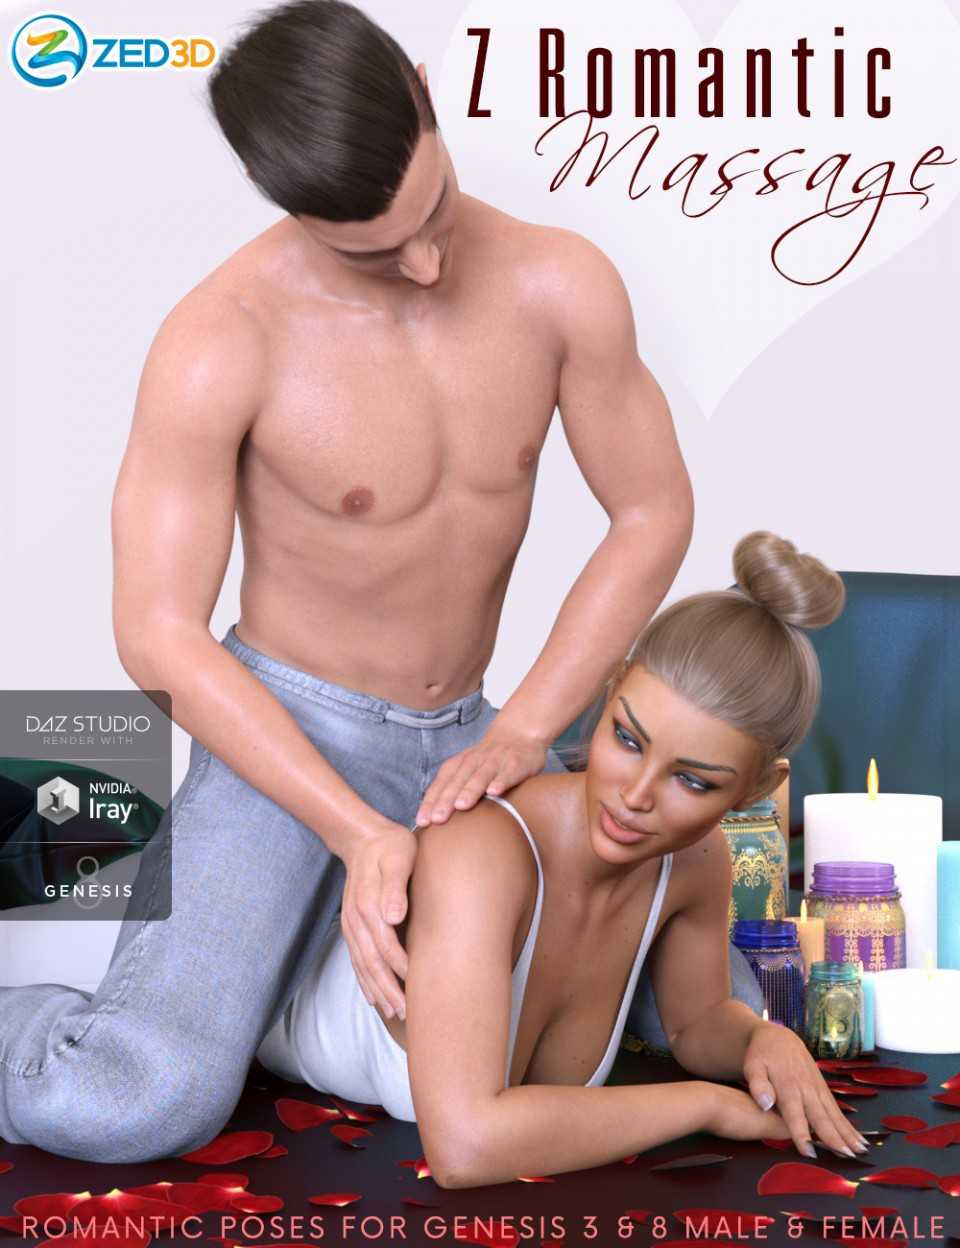 Z Romantic Massage Couple Poses for Genesis 3 and 8